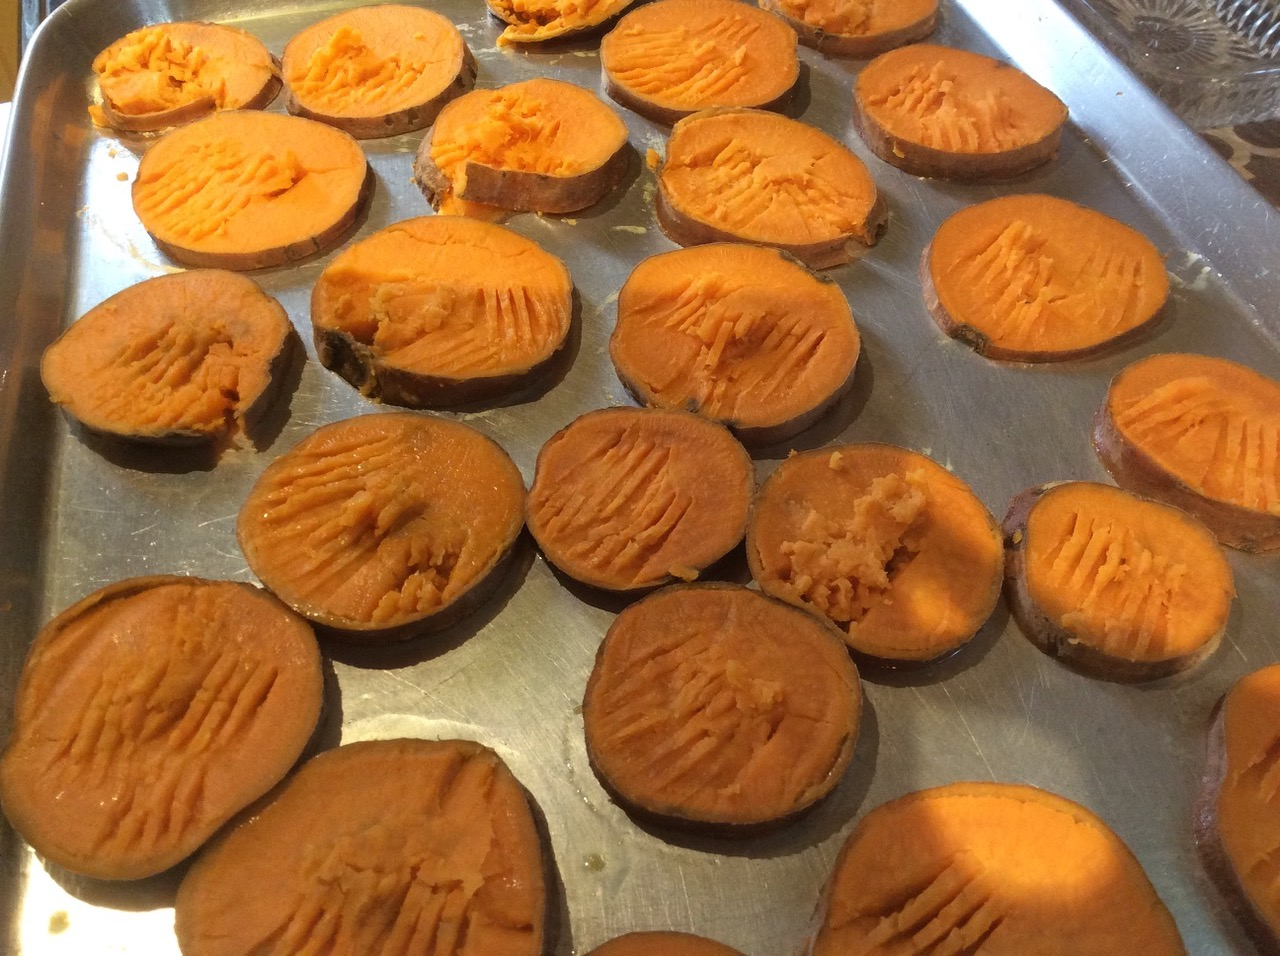 B sweet potato slices pan2